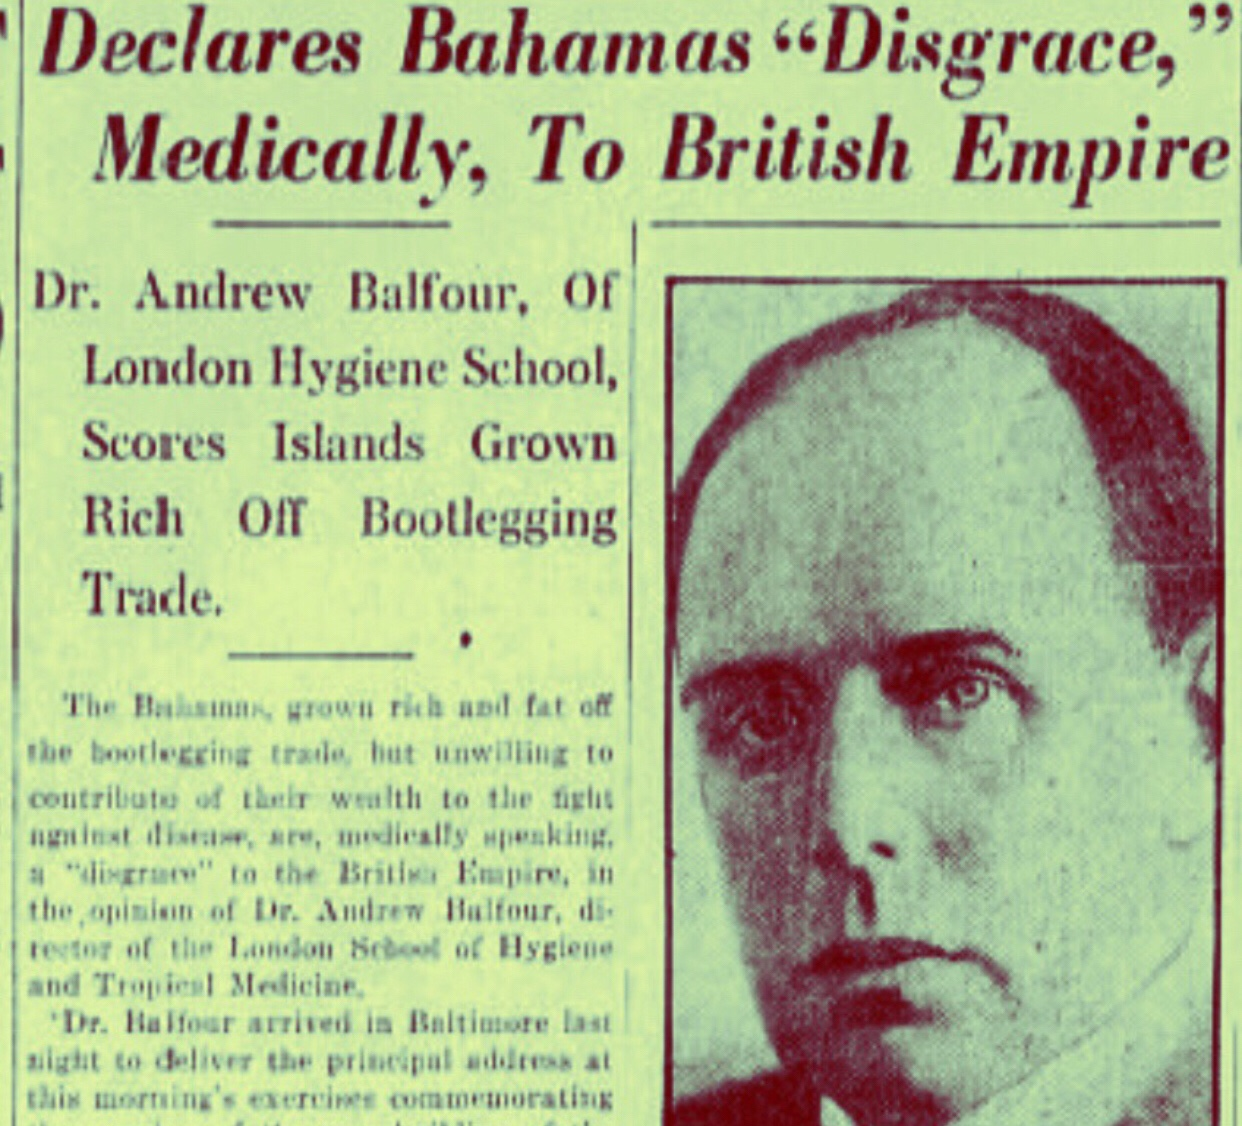 After a Difficult Year, Bahamas branded a 'disgrace' Medically to British Empire 1926